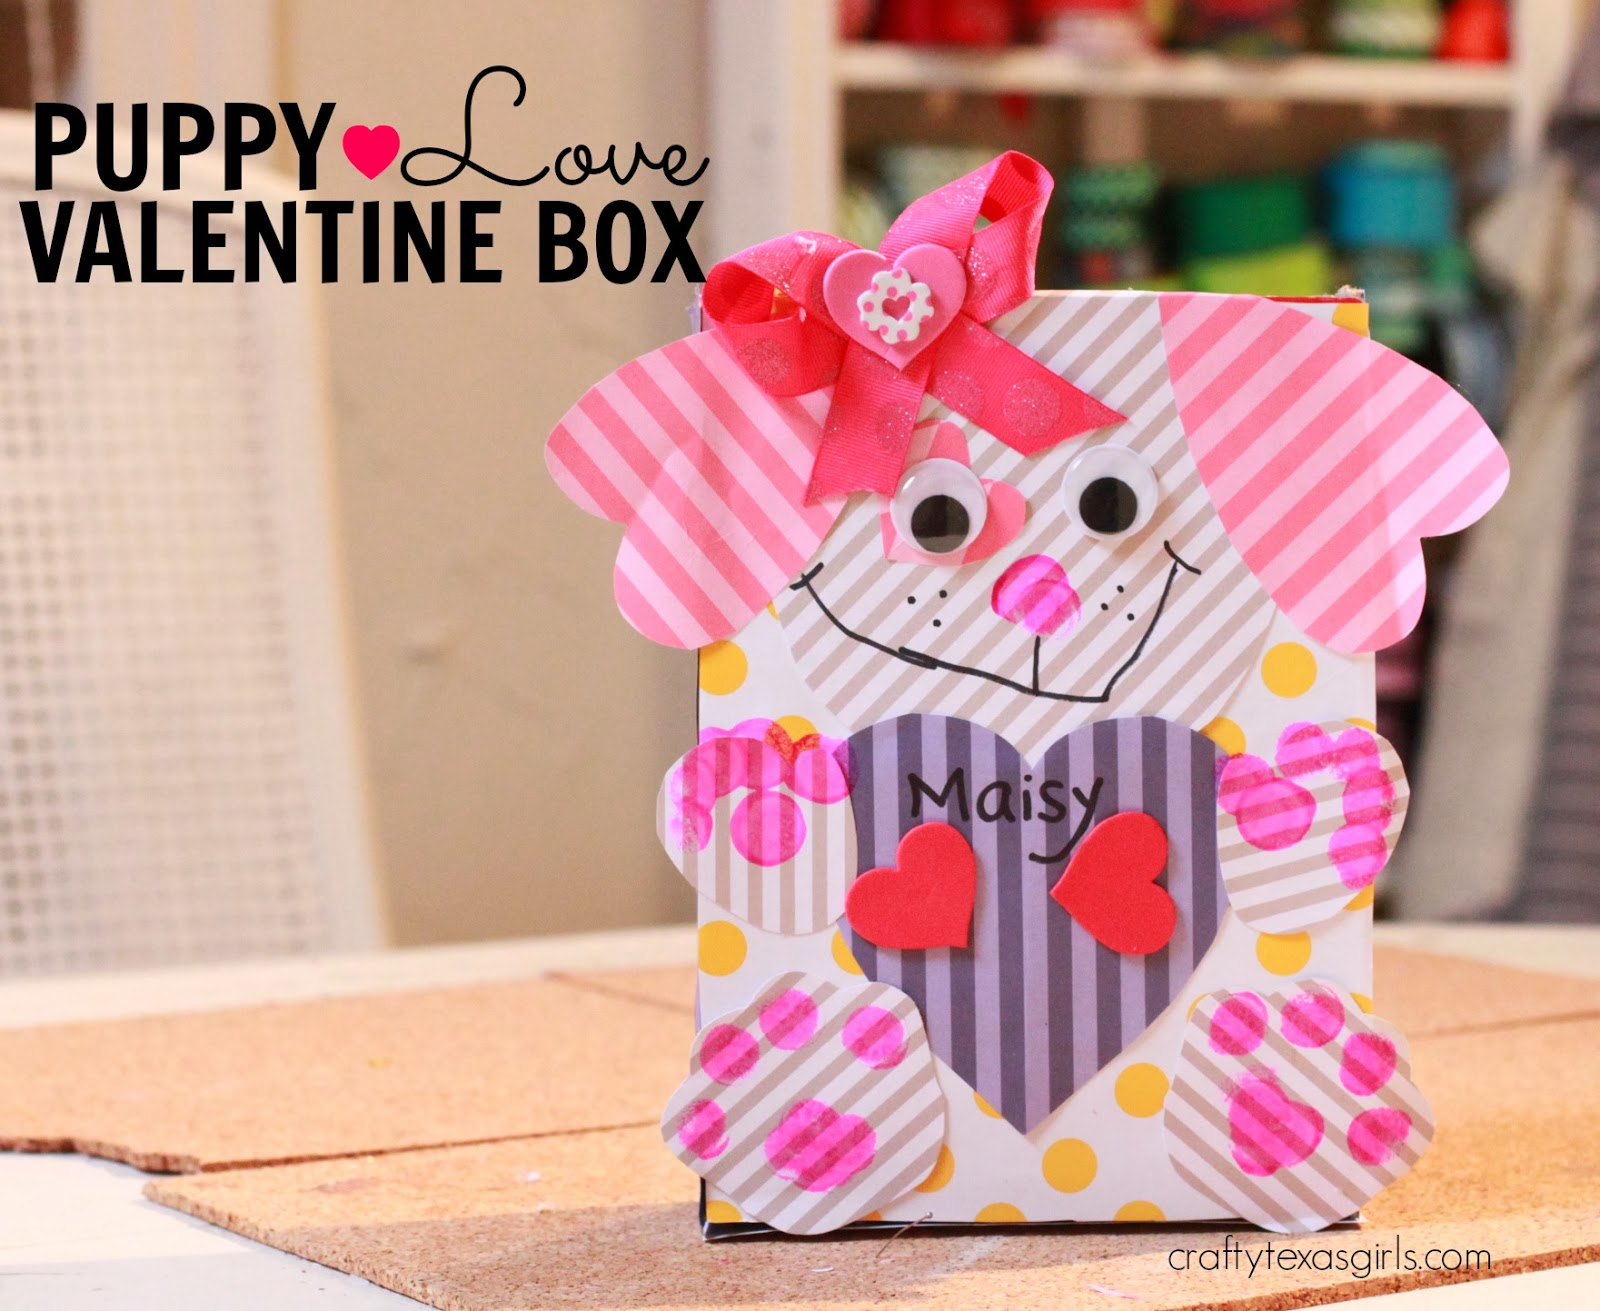 Crafty Texas Girls Puppy Love Valentine Box